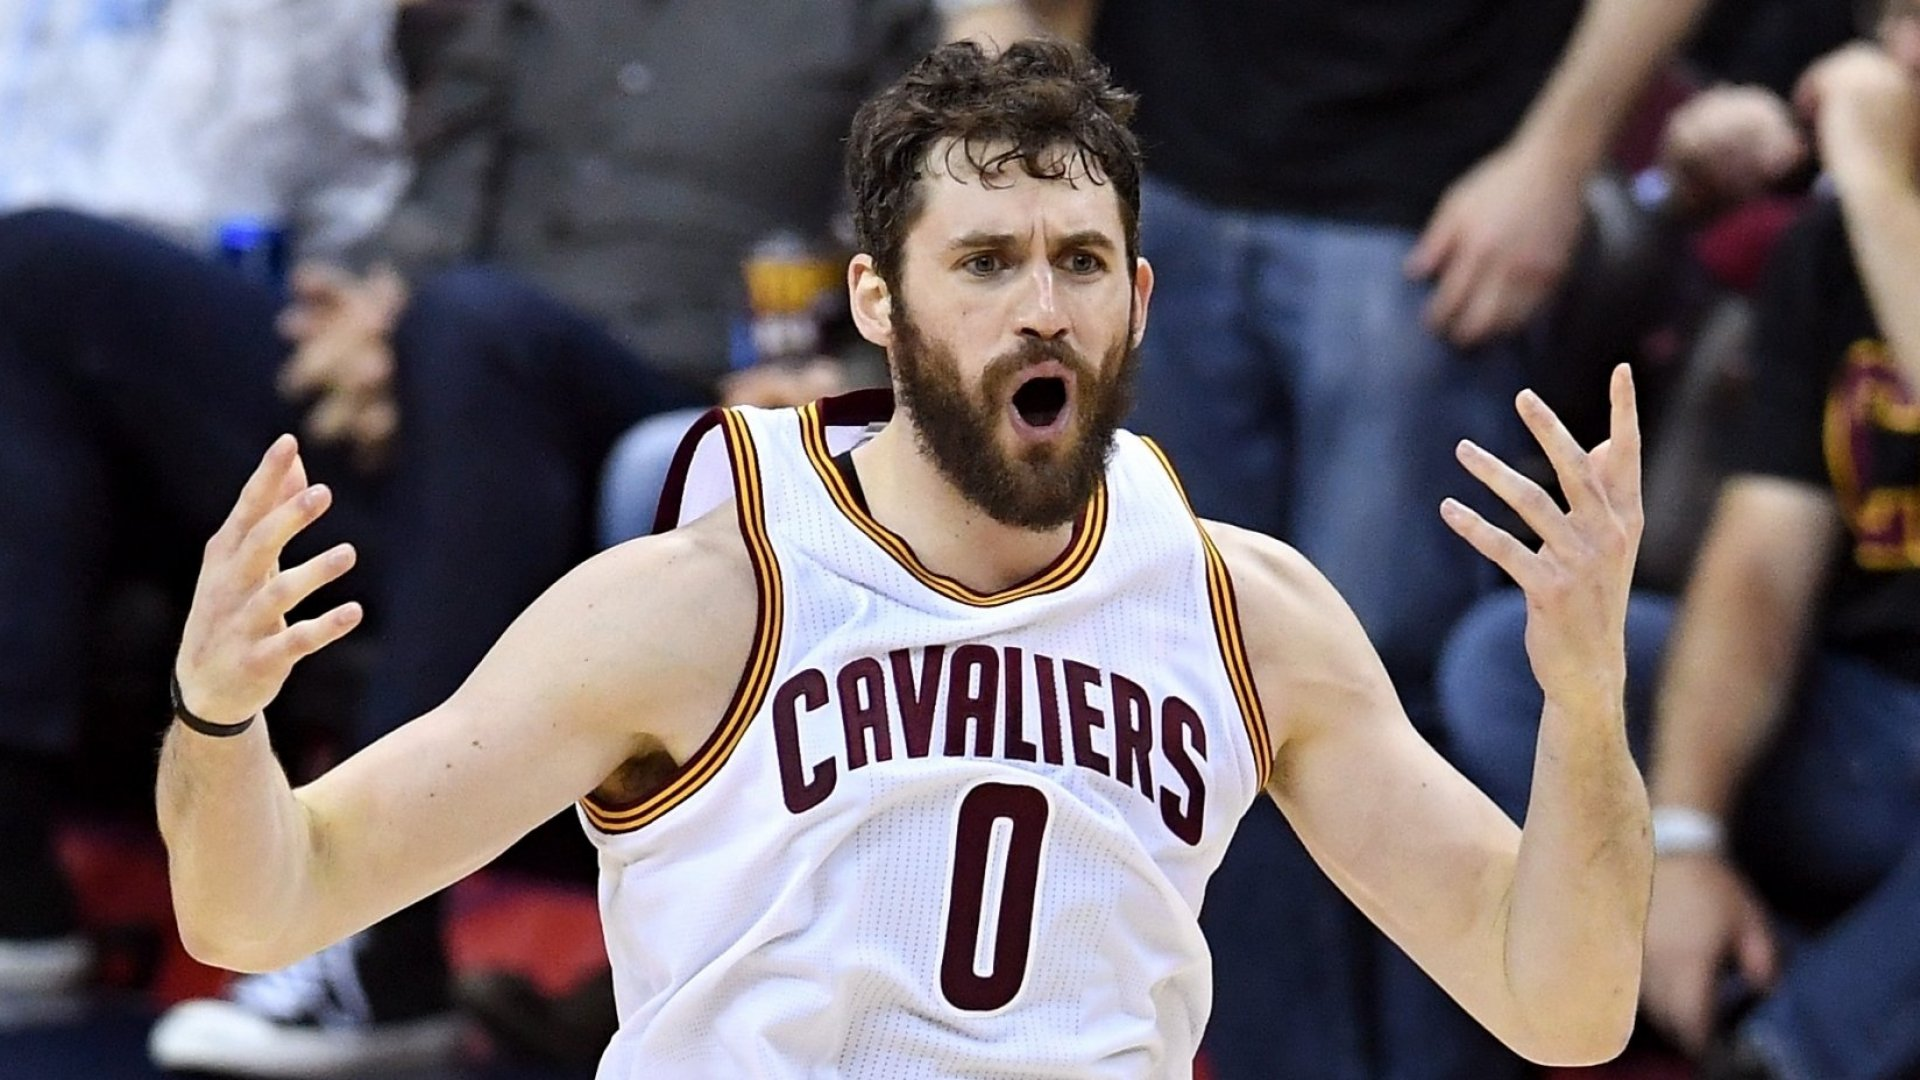 NBA Star Kevin Love's Stunning Admission Teaches a Powerful Lesson in Vulnerability